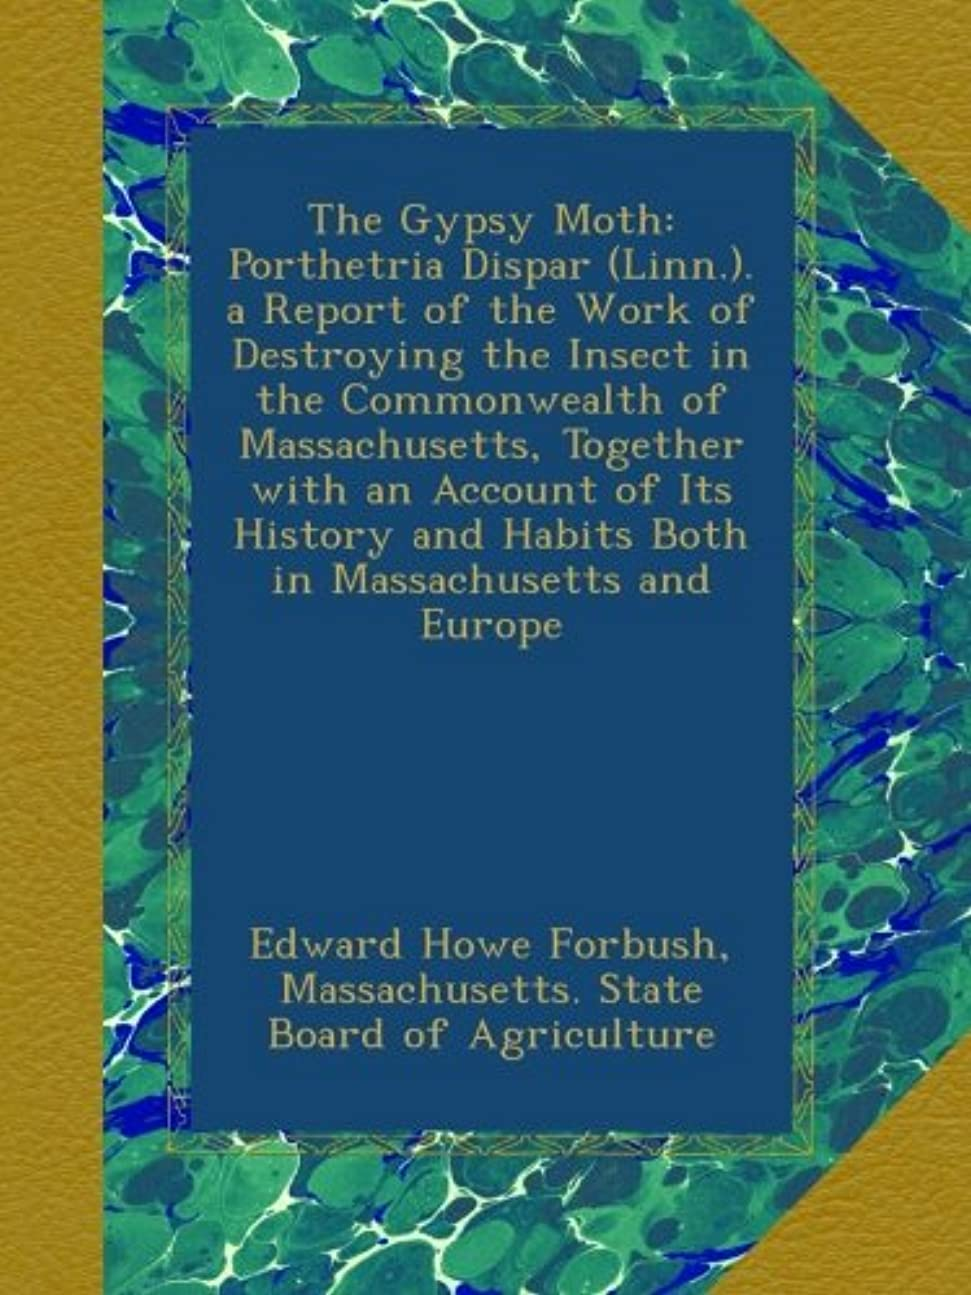 シーボードリーフレット唯物論The Gypsy Moth: Porthetria Dispar (Linn.). a Report of the Work of Destroying the Insect in the Commonwealth of Massachusetts, Together with an Account of Its History and Habits Both in Massachusetts and Europe